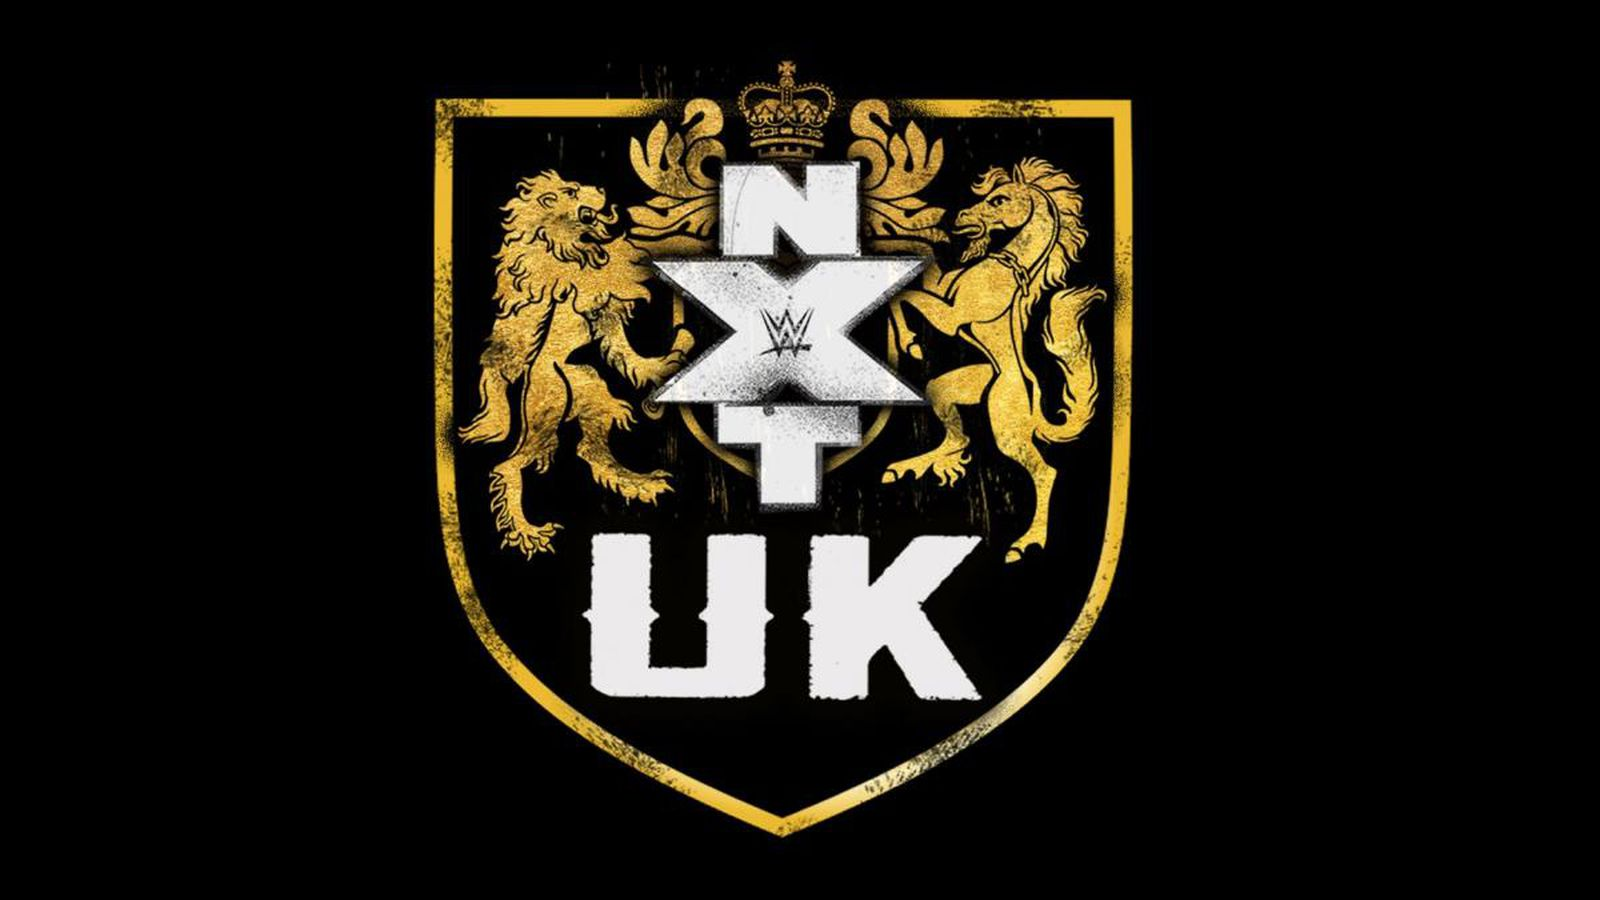 Let's talk about NXT UK!